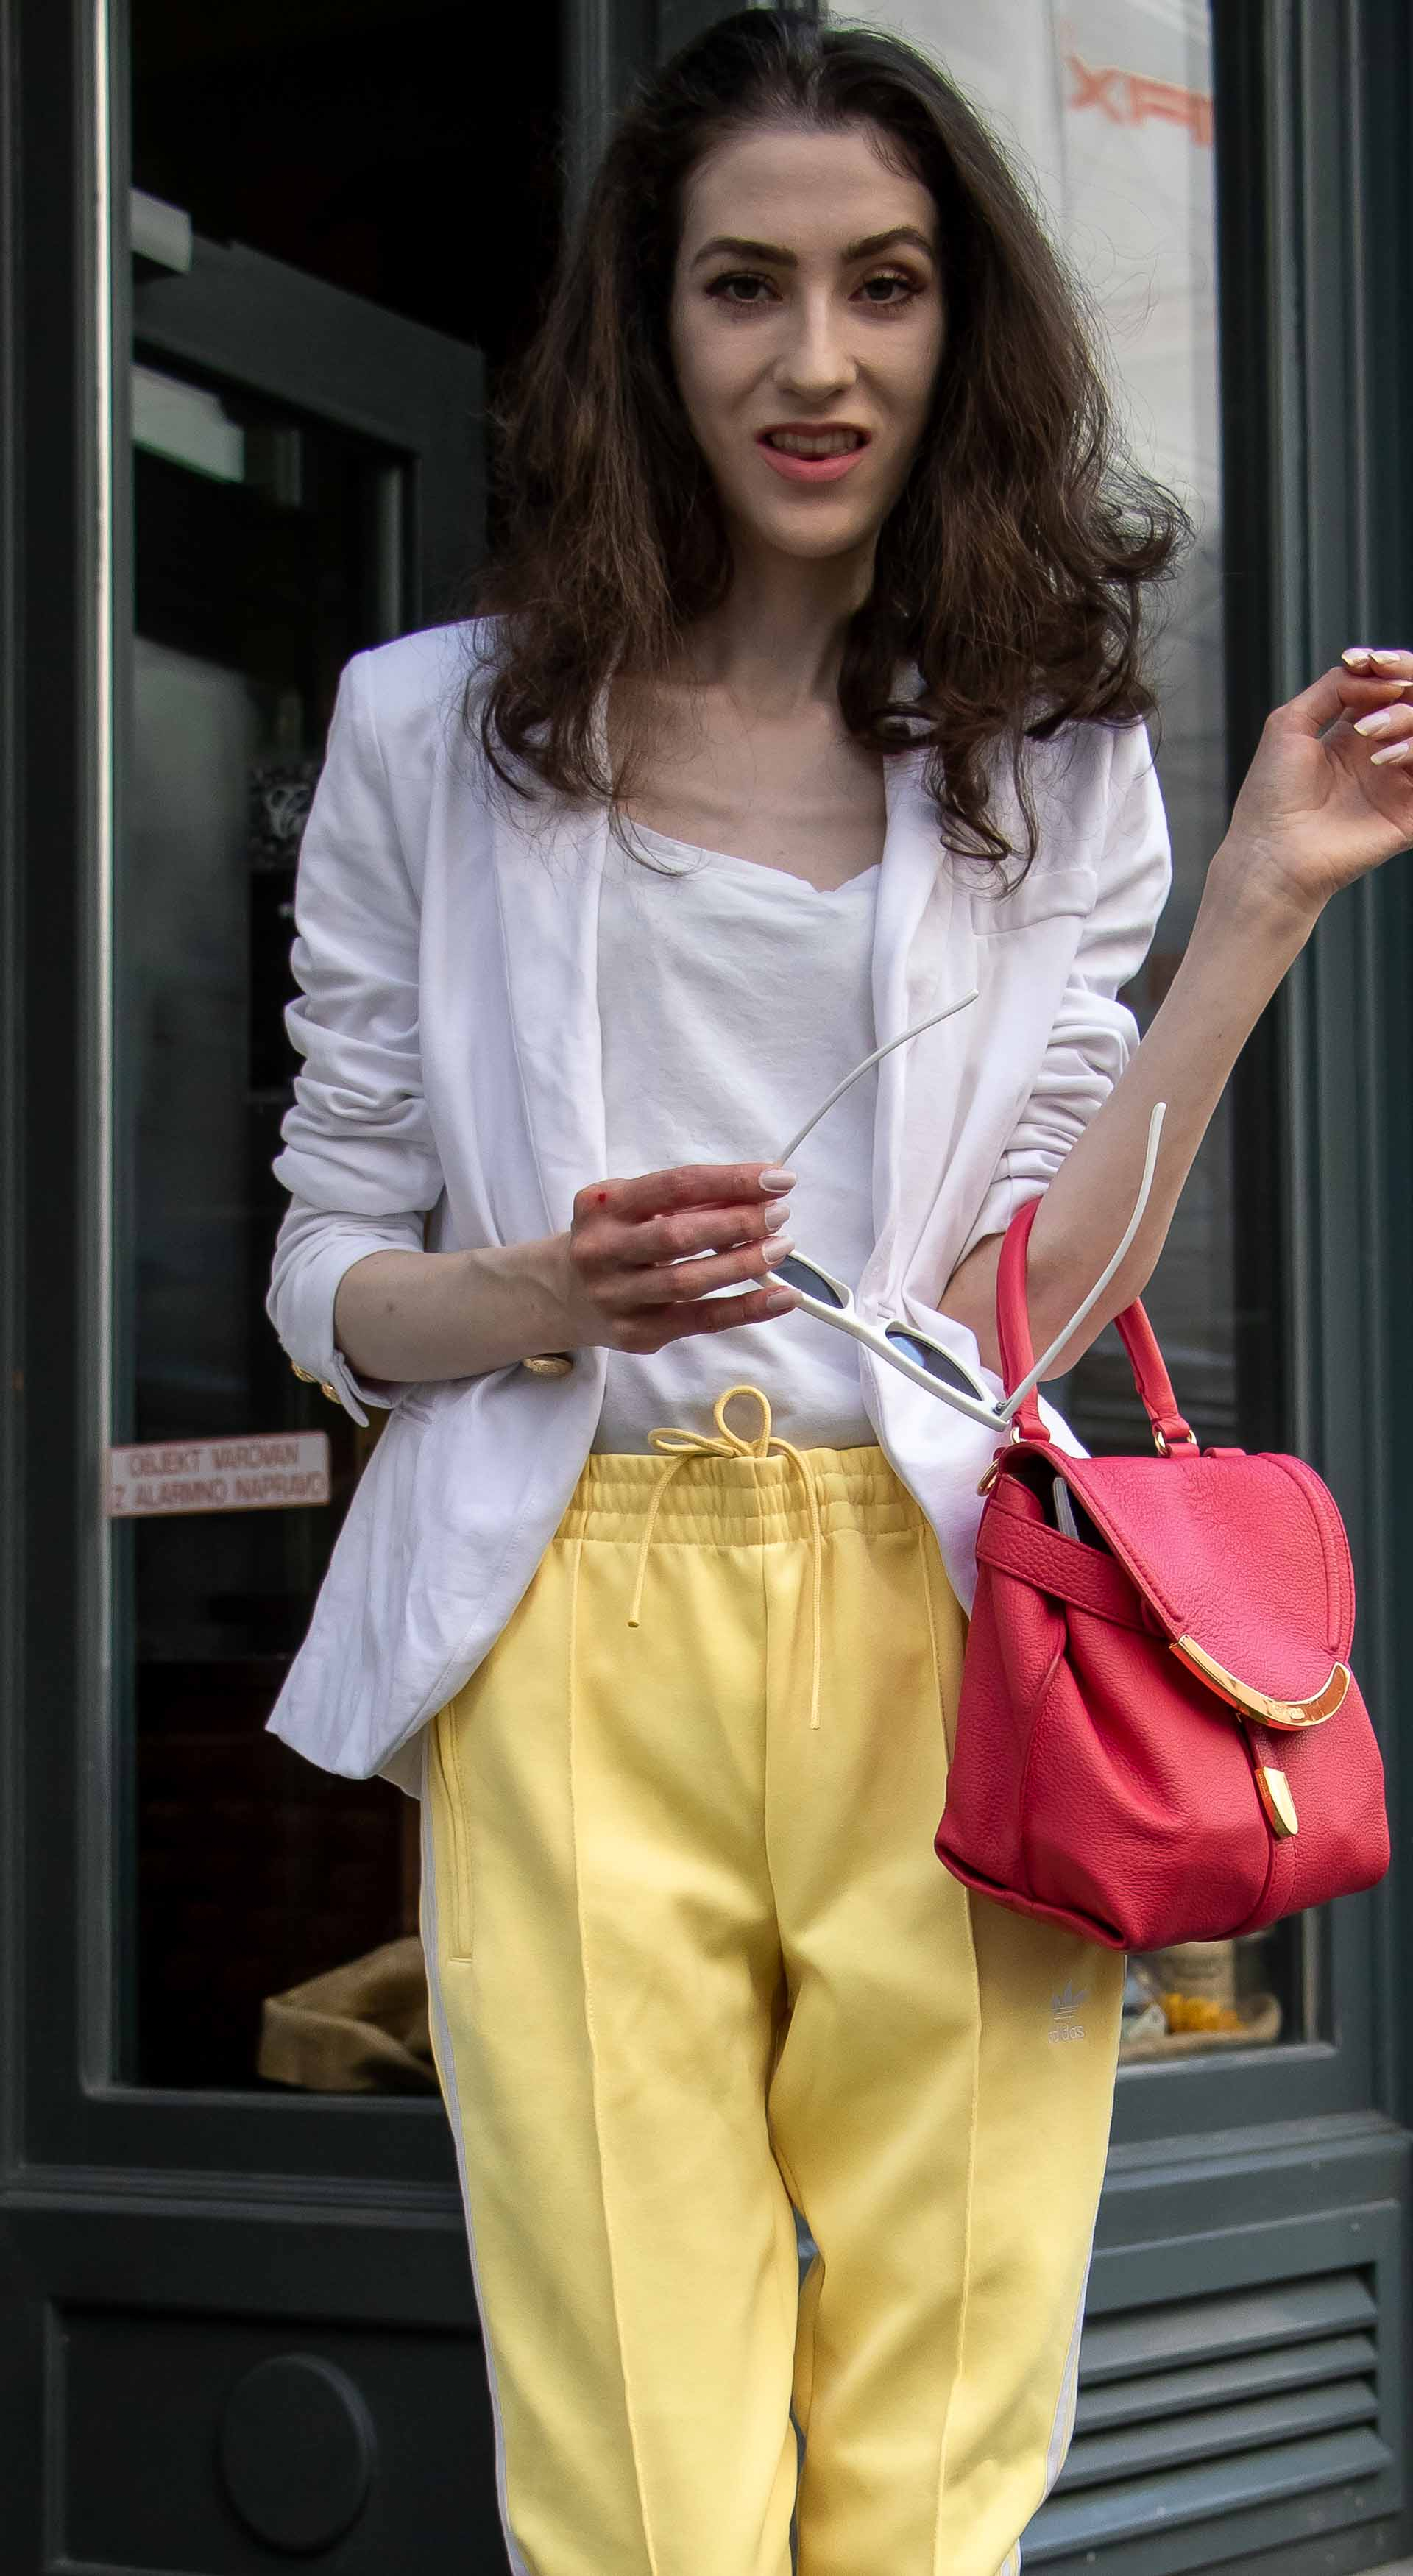 Veronika Lipar Fashion Blogger of Brunette from Wall Street wearing white blazer, white H&M t-shirt, yellow Addidas track pants, See by Chloé pink top handle bag, Adam Selman x Le Specs white cat eye Lolita sunglasses, pink blush Gianvito Rossi plexi pumps in summer